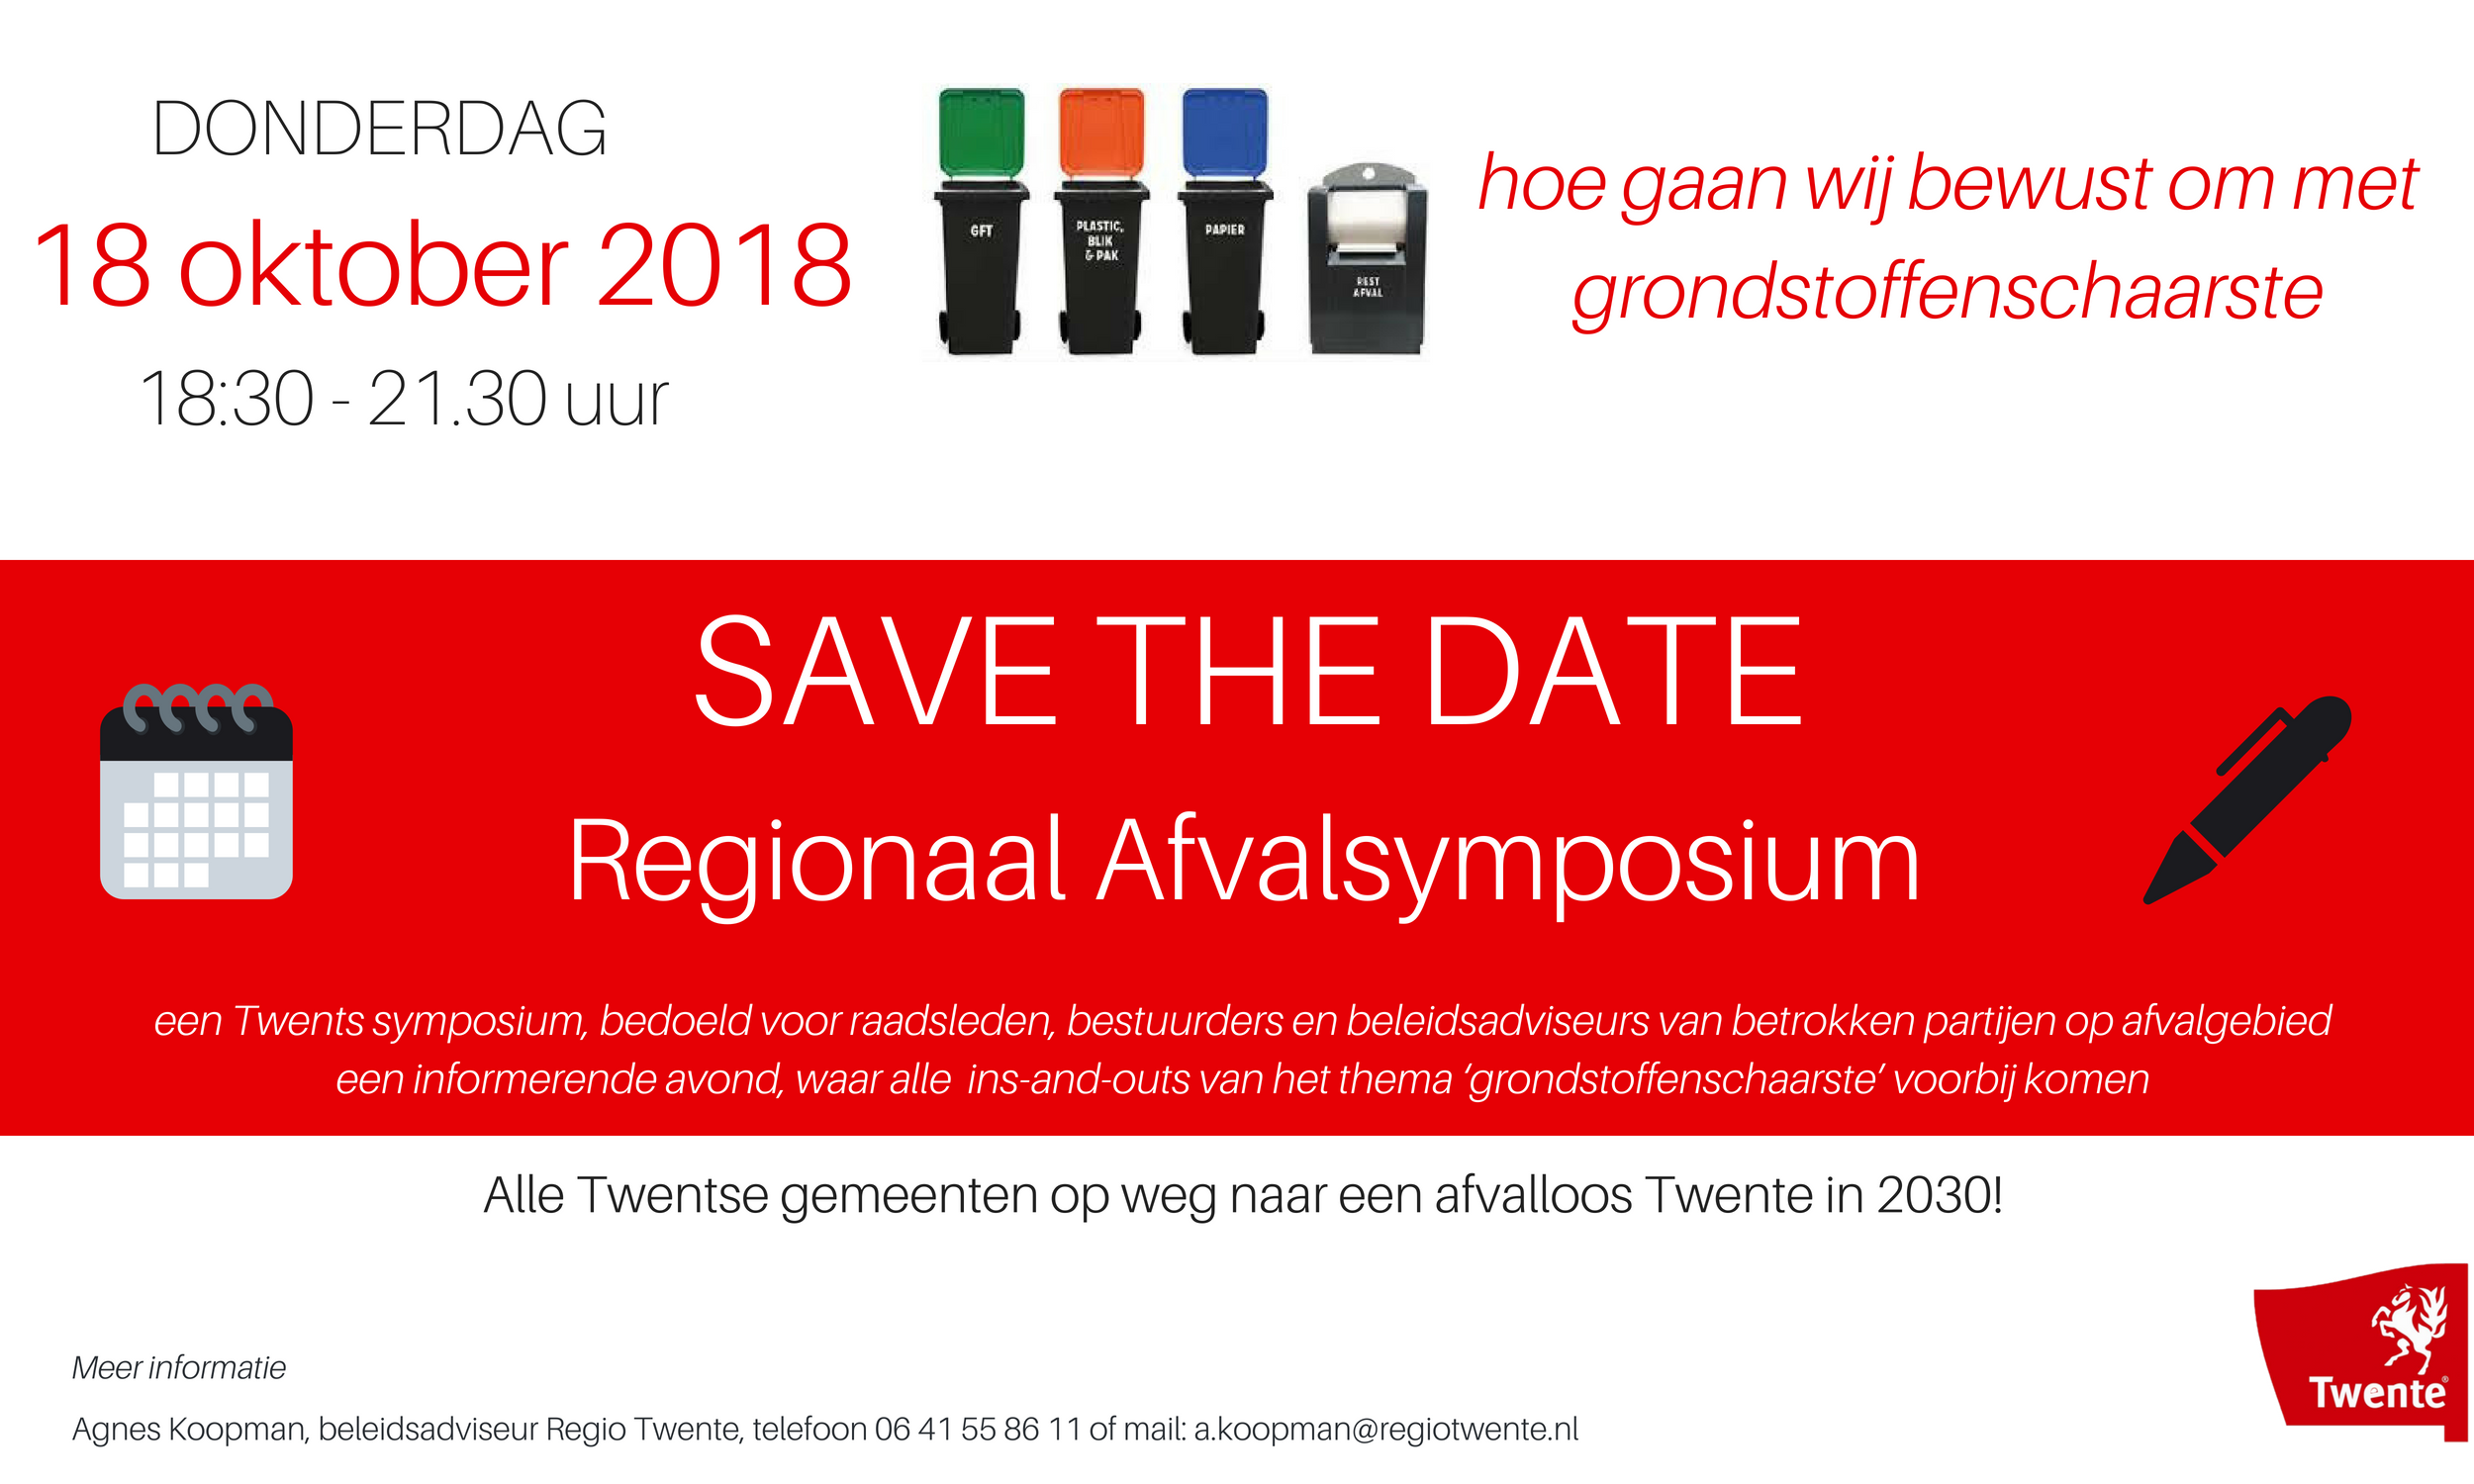 SAVE THE DATE 1 Afvalsymposium